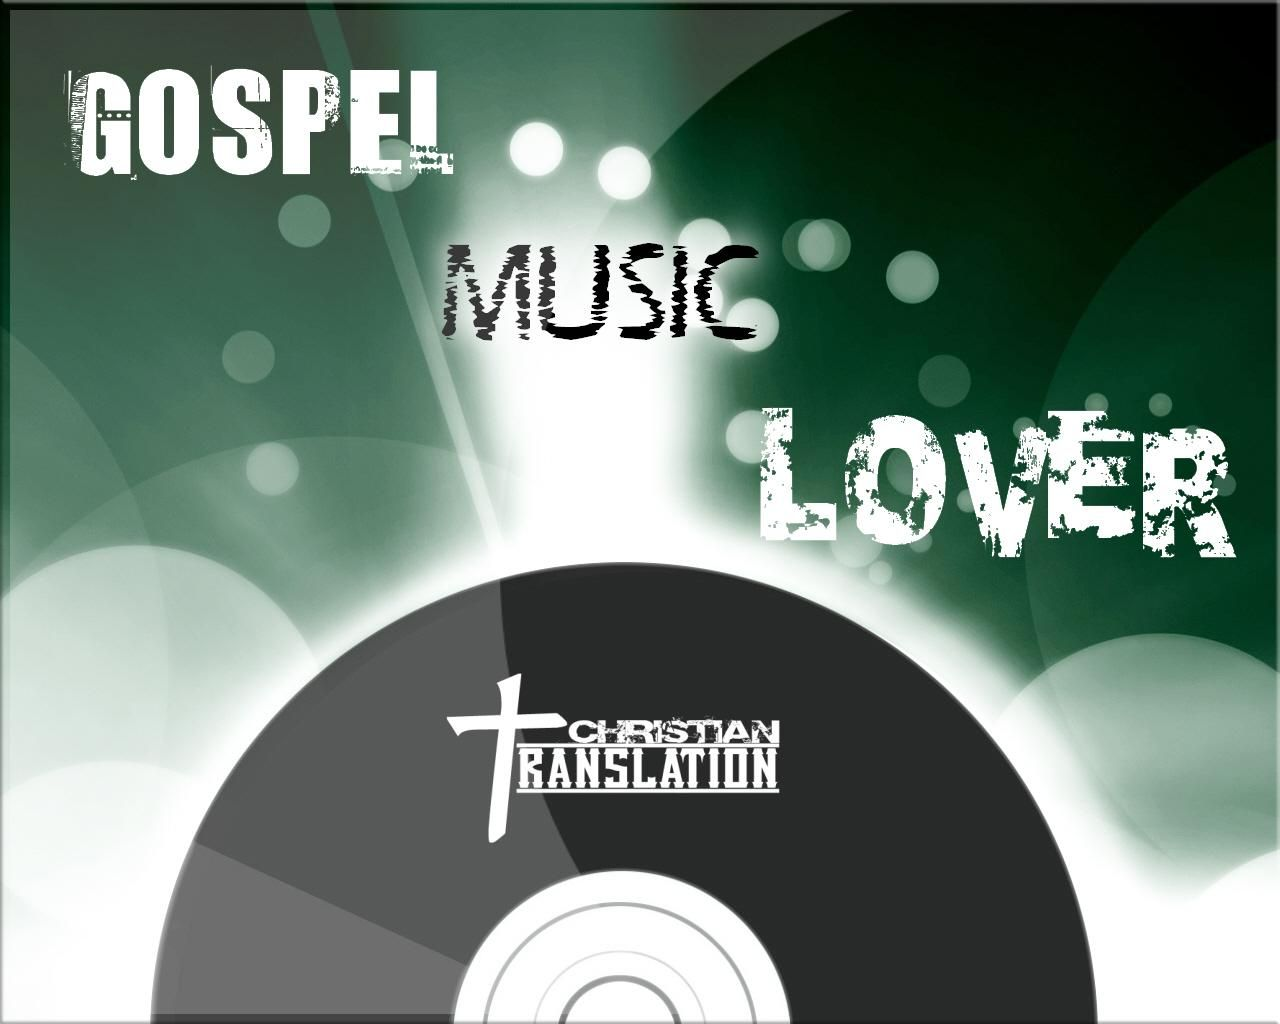 Gospel Music Wallpaper Christian Wallpapers And Backgrounds